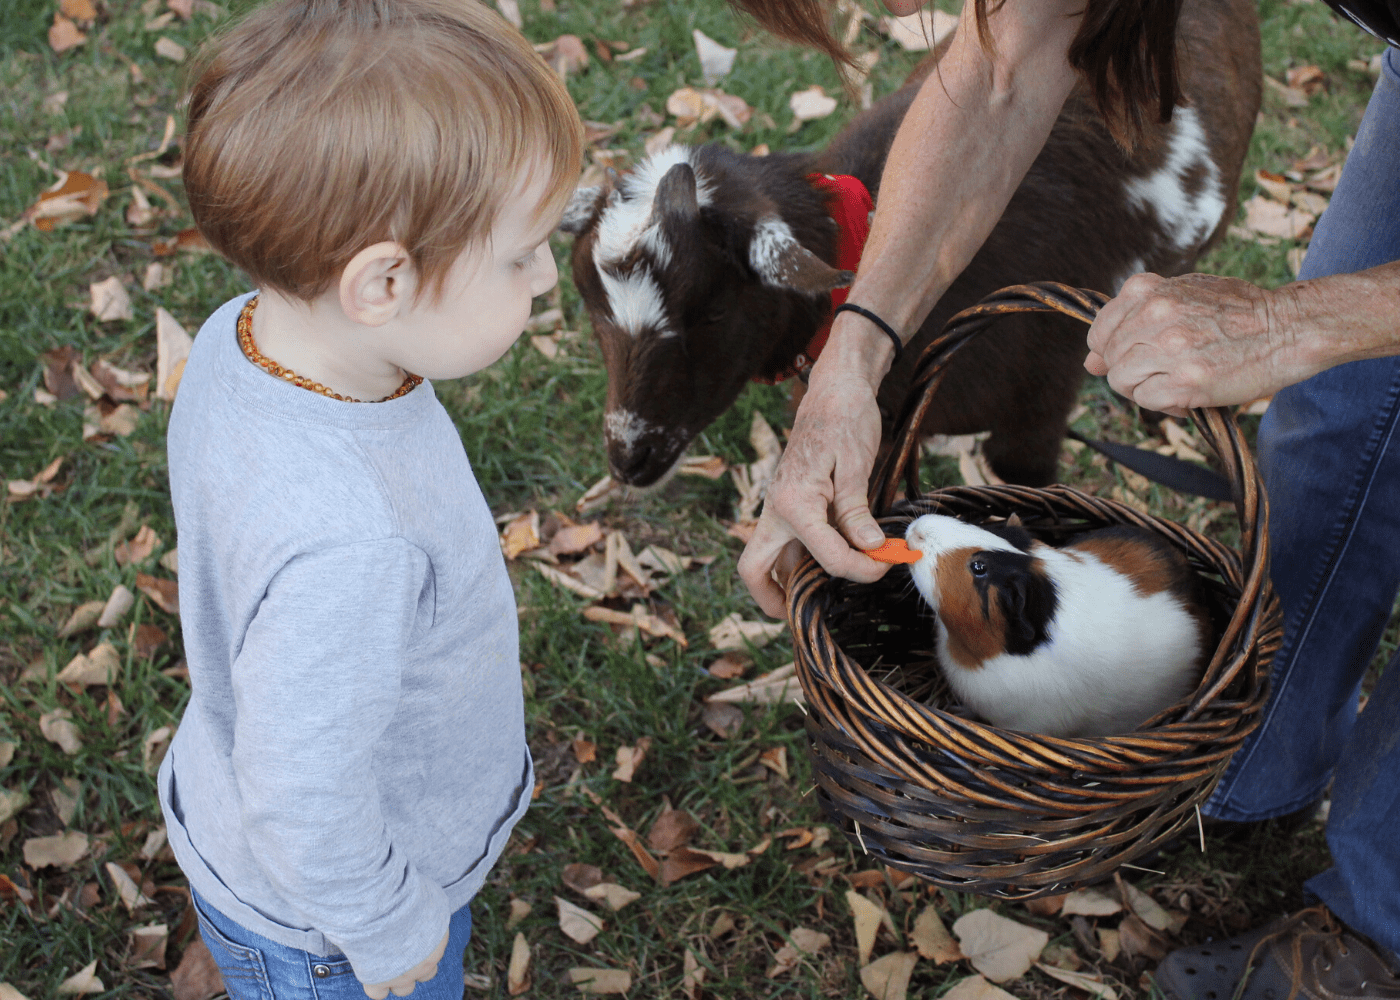 Small pets for kids in Singapore: Guinea Pigs